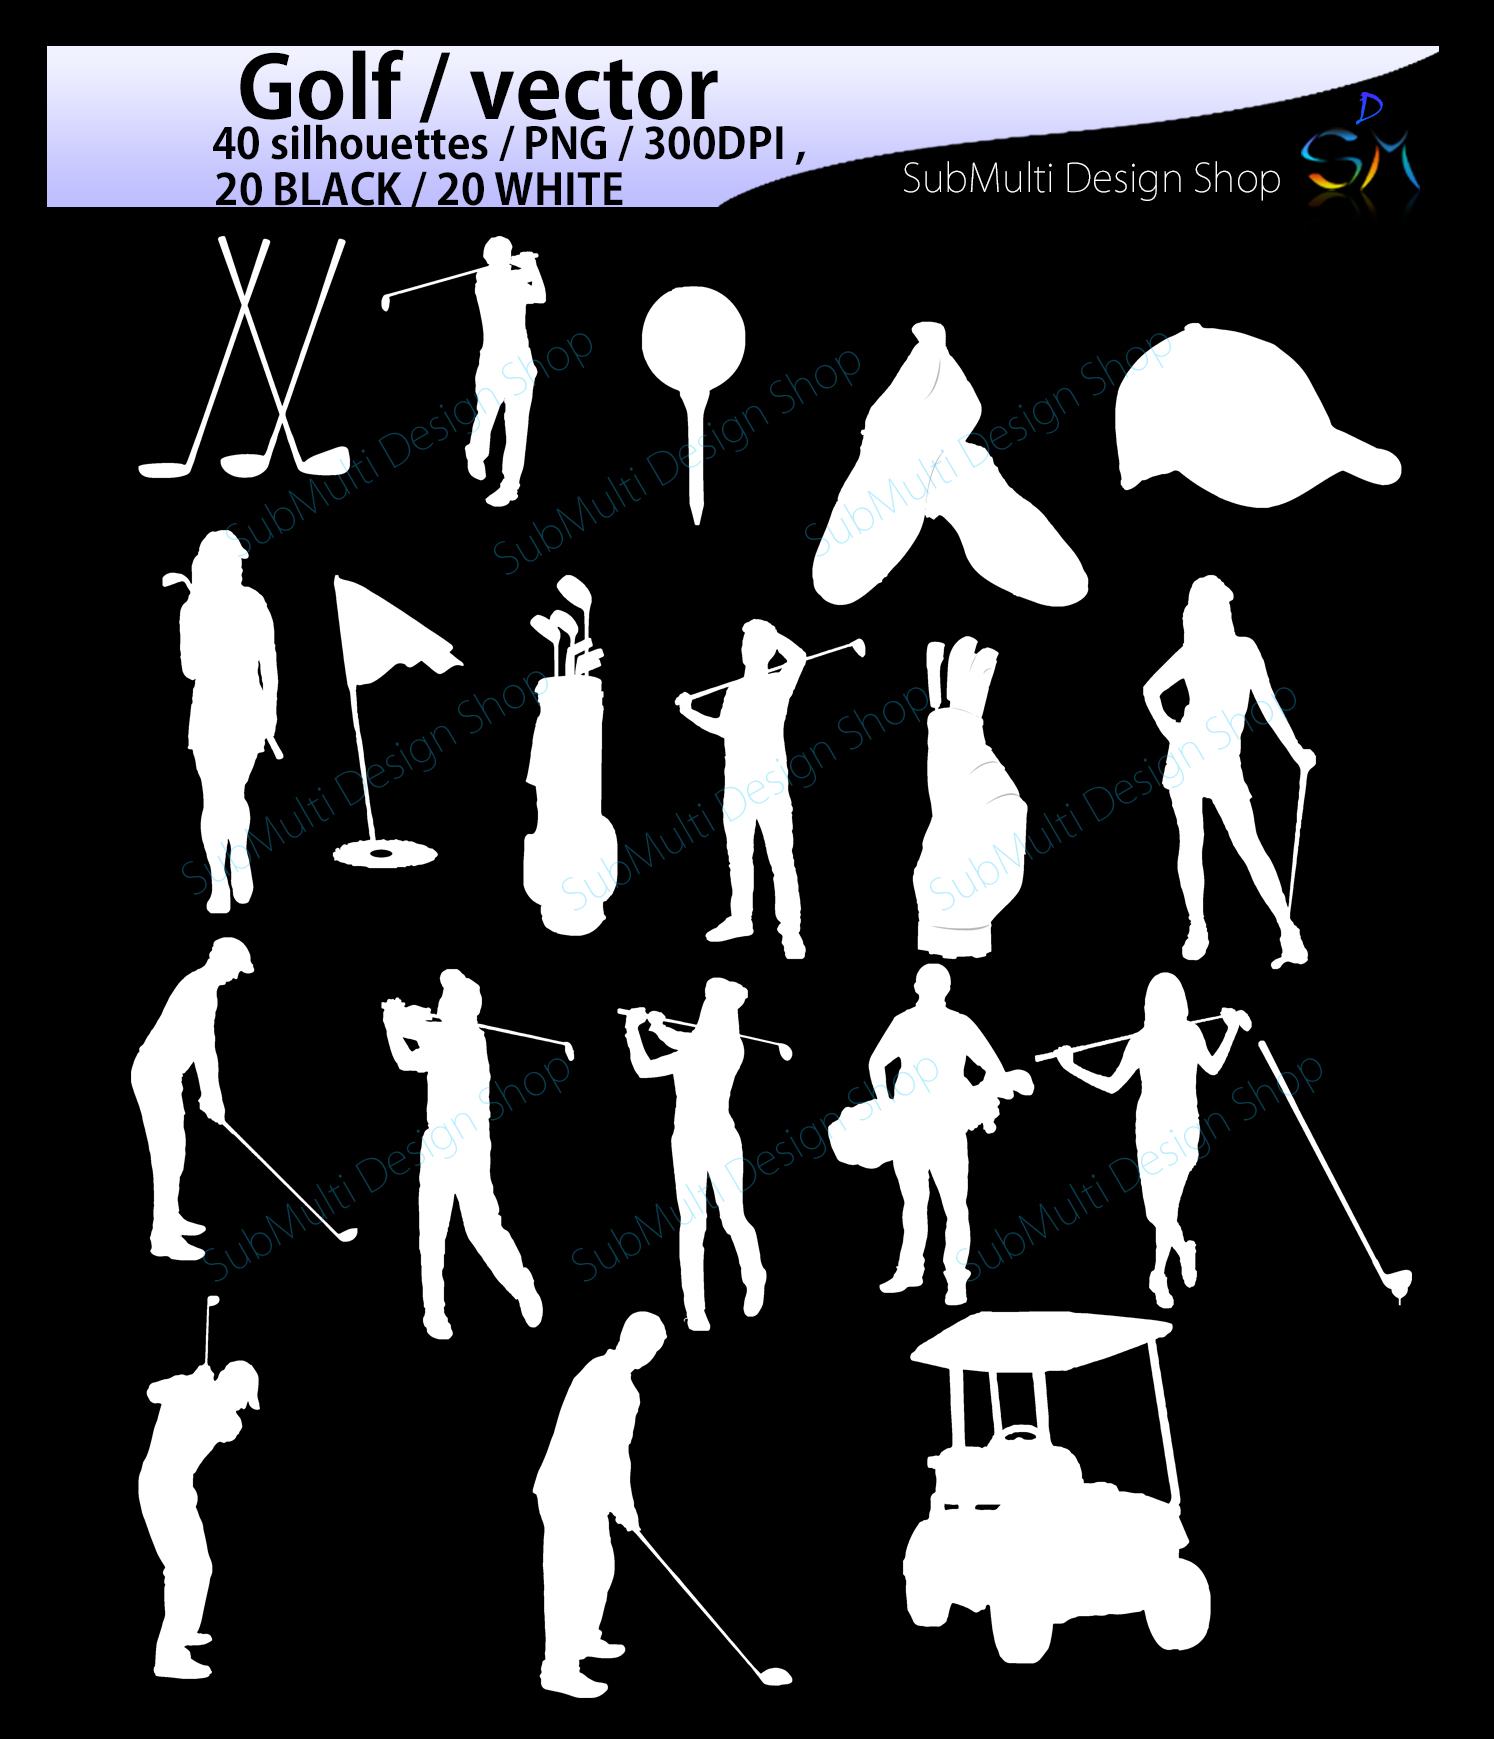 golf / golf SVG / golf silhouette / golf clipart / printable golf players / golf game set / EPS / PNG file /High Quality Vector / Dxf example image 3